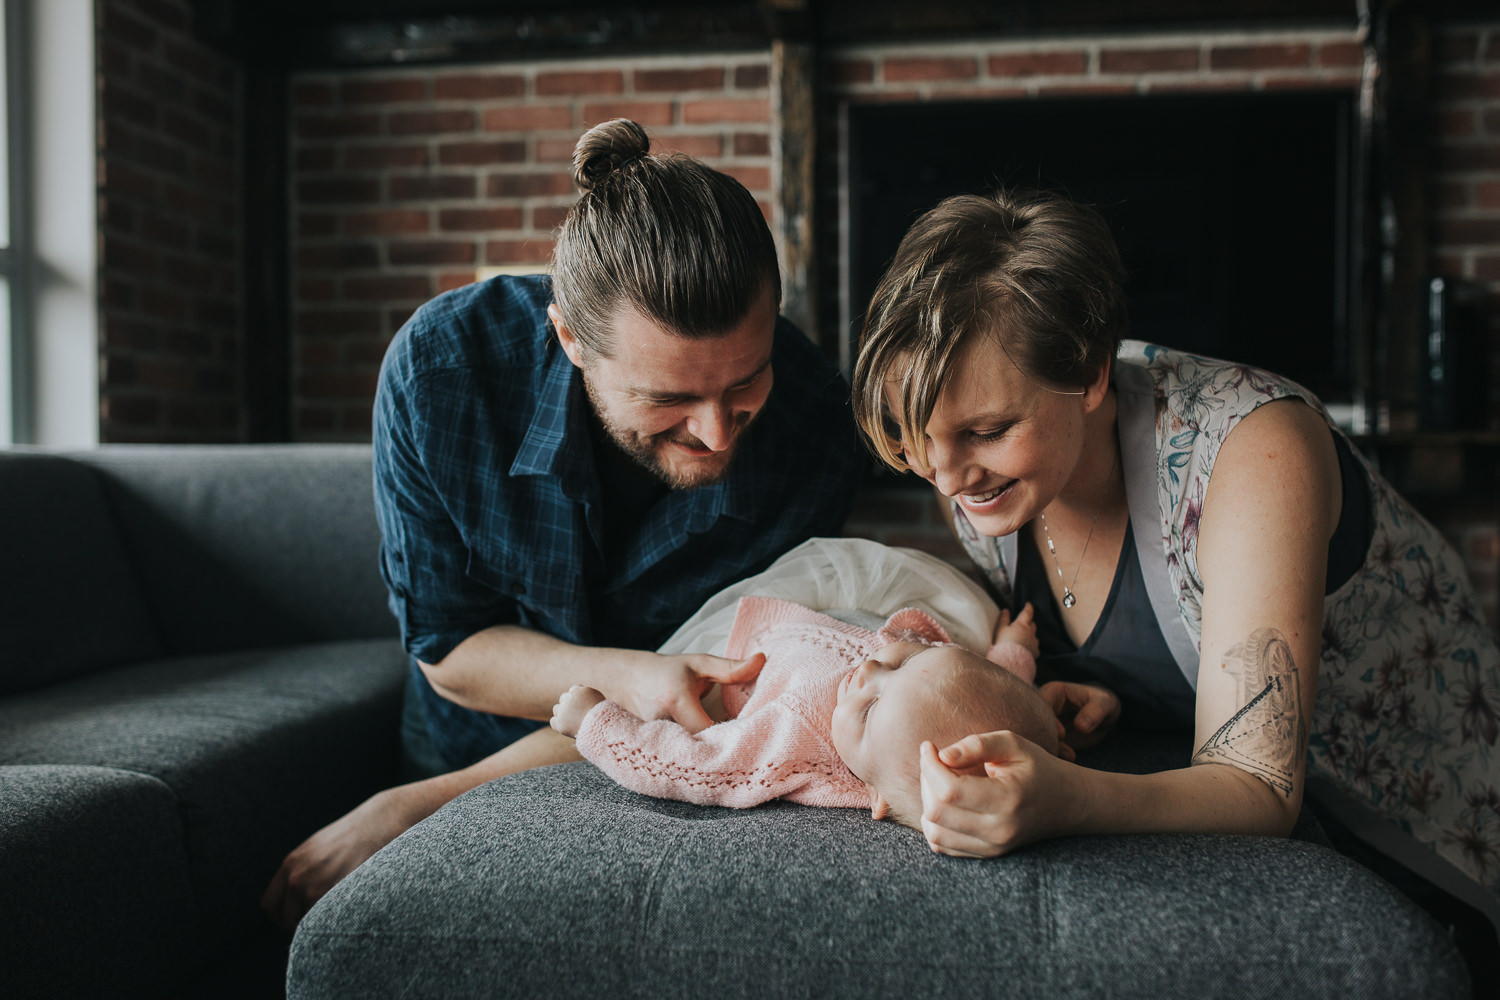 parents looking and smiling at 5 month old baby girl lying on couch - Newmarket lifestyle photography